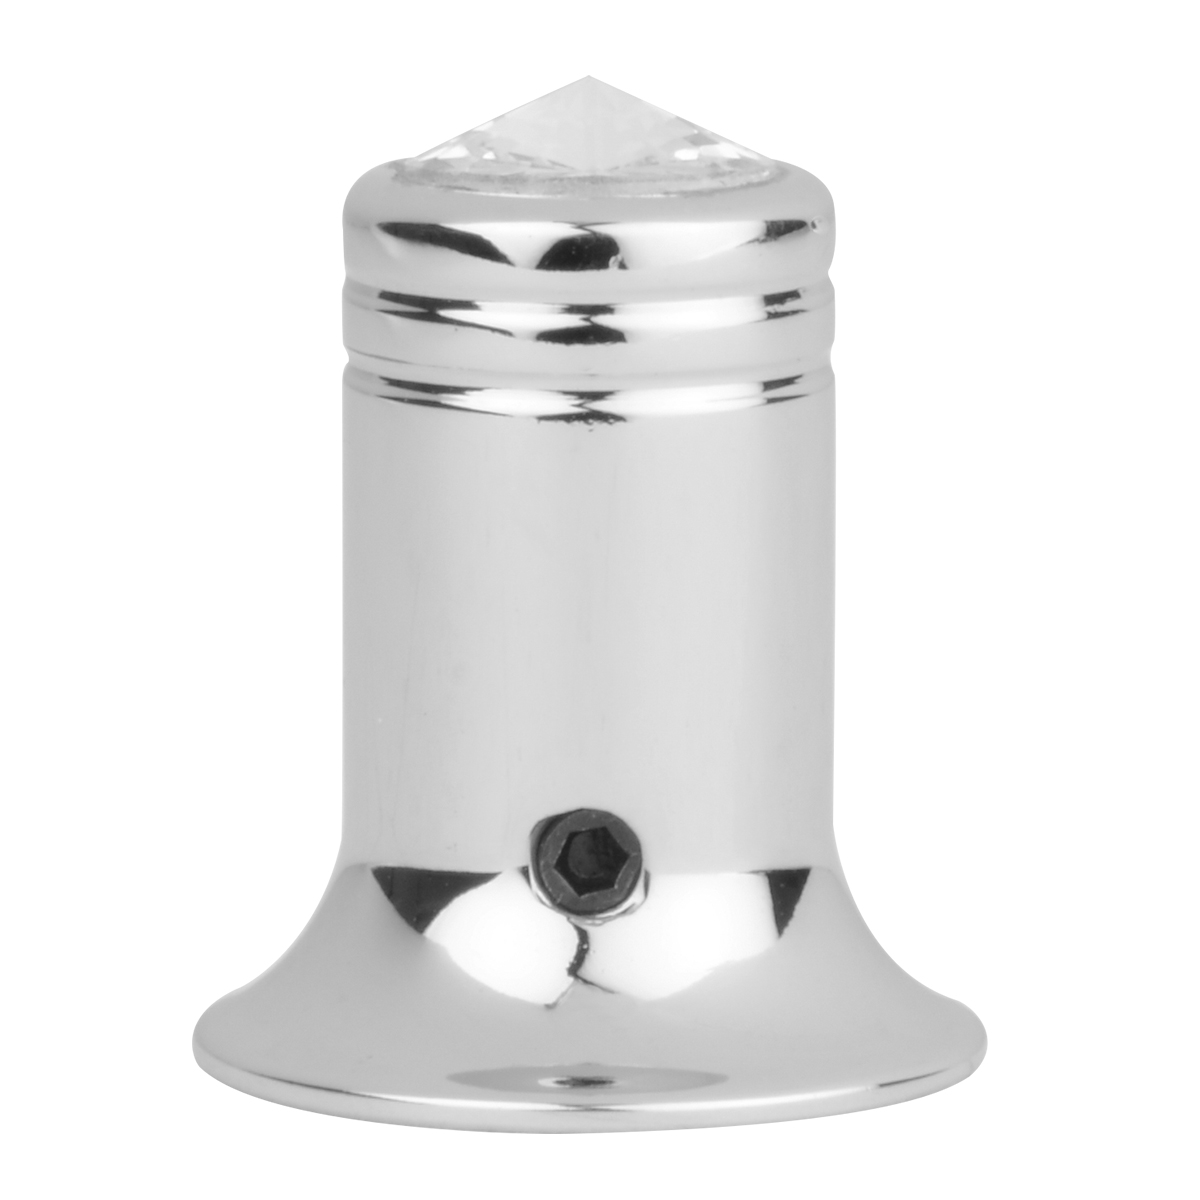 Chrome Plated Aluminum C.B. Channel Knobs with Crystal on Top